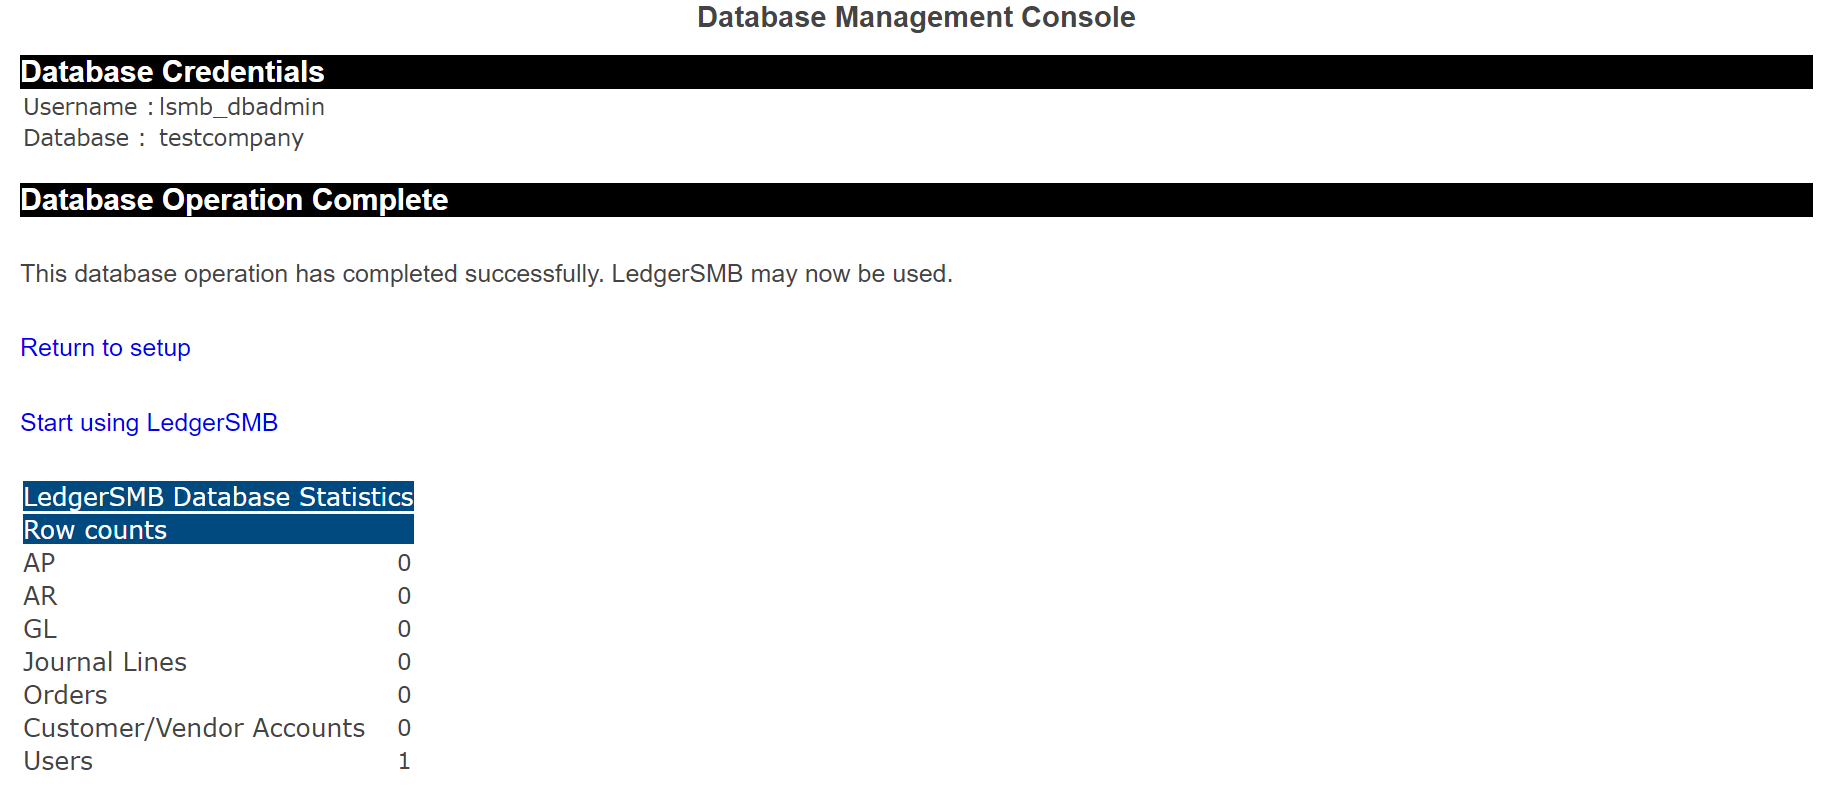 Confirmation of database creation (completed)